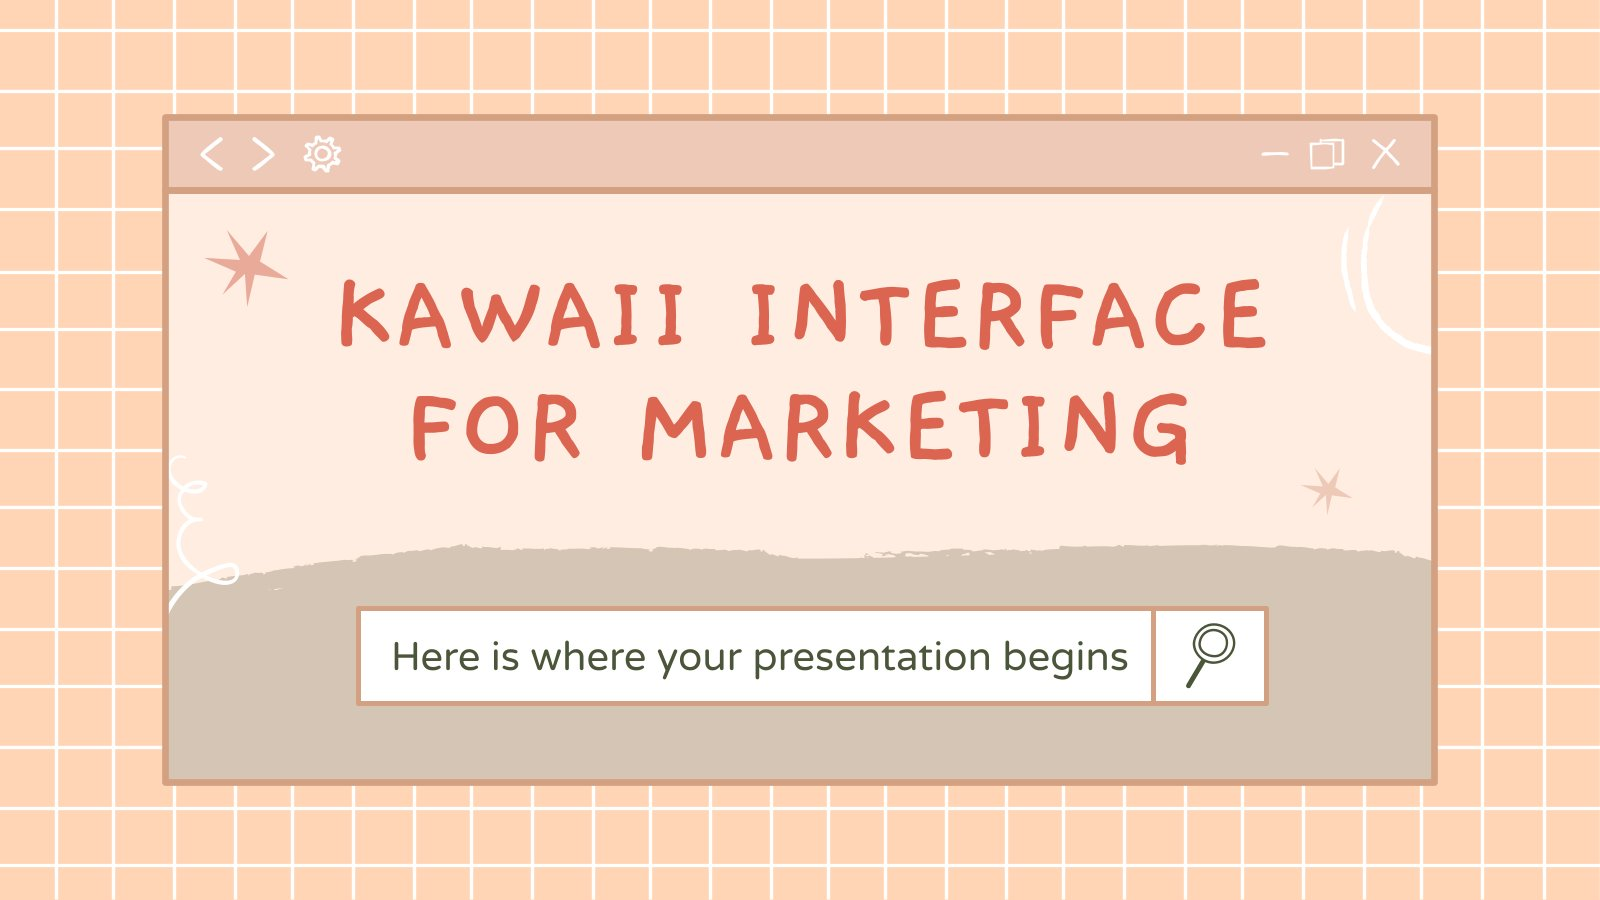 Interface kawaii pour marketing : Modèles de présentation